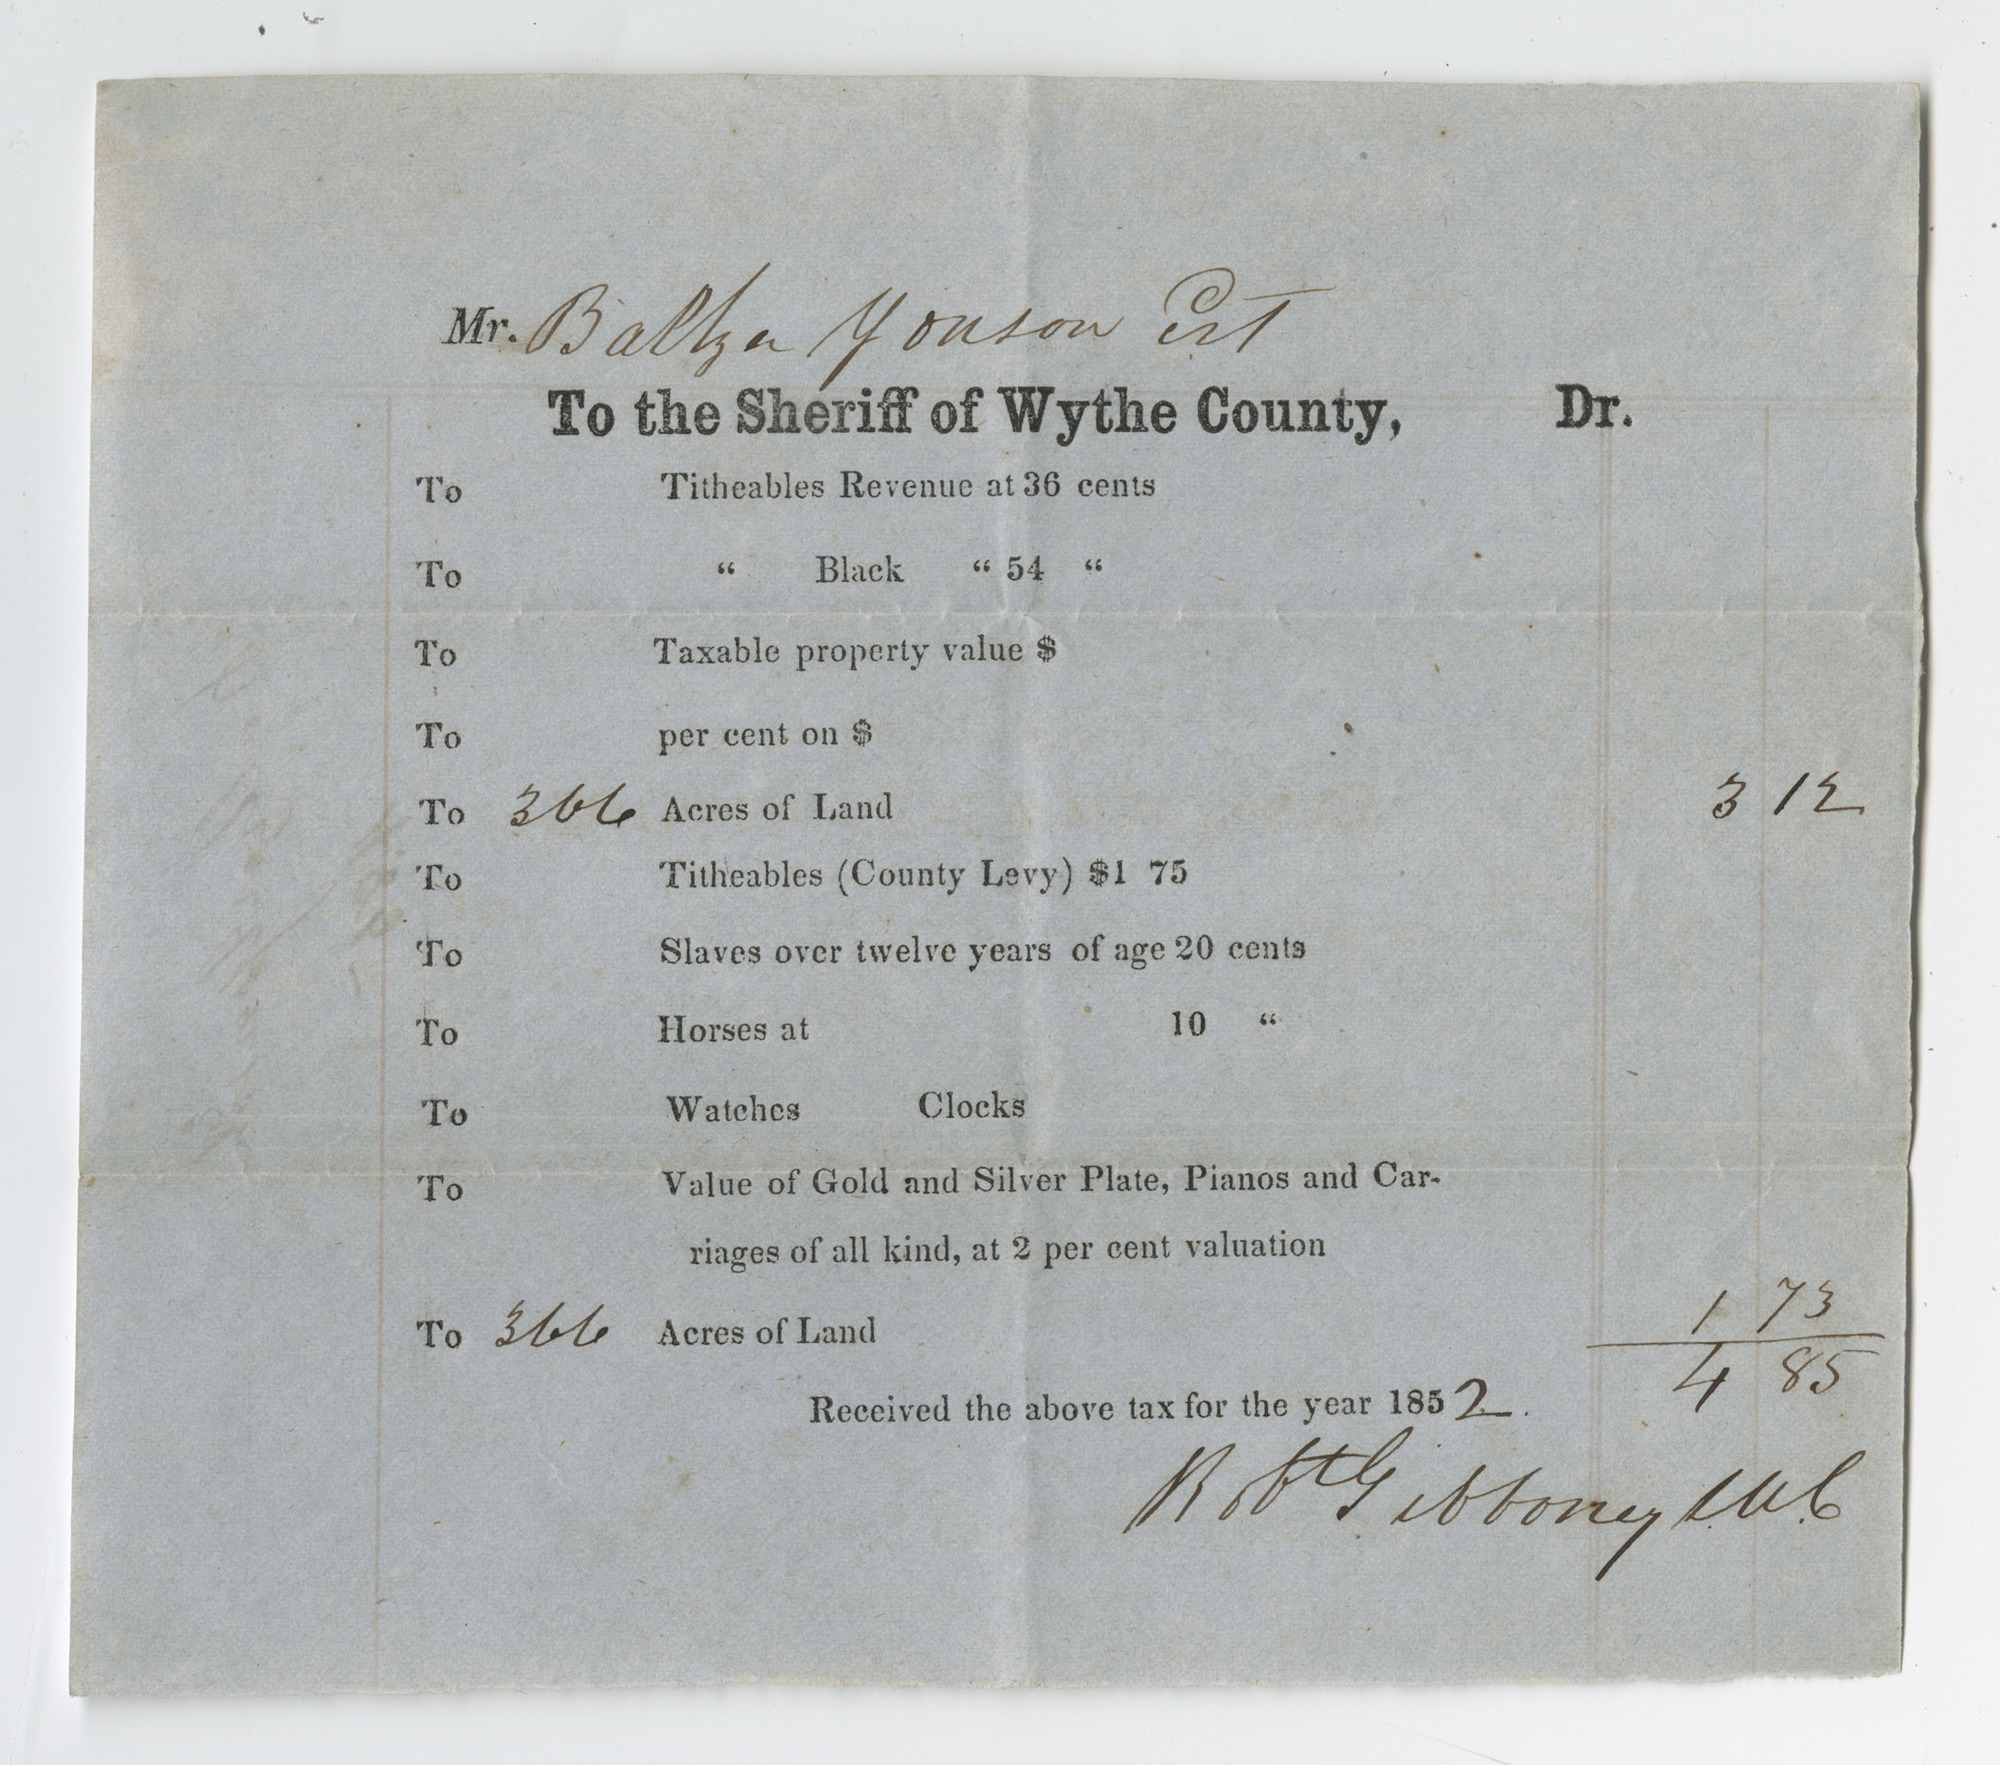 Ms2013_020_YonsonFamily_TaxReceipt1852_031a.jpg